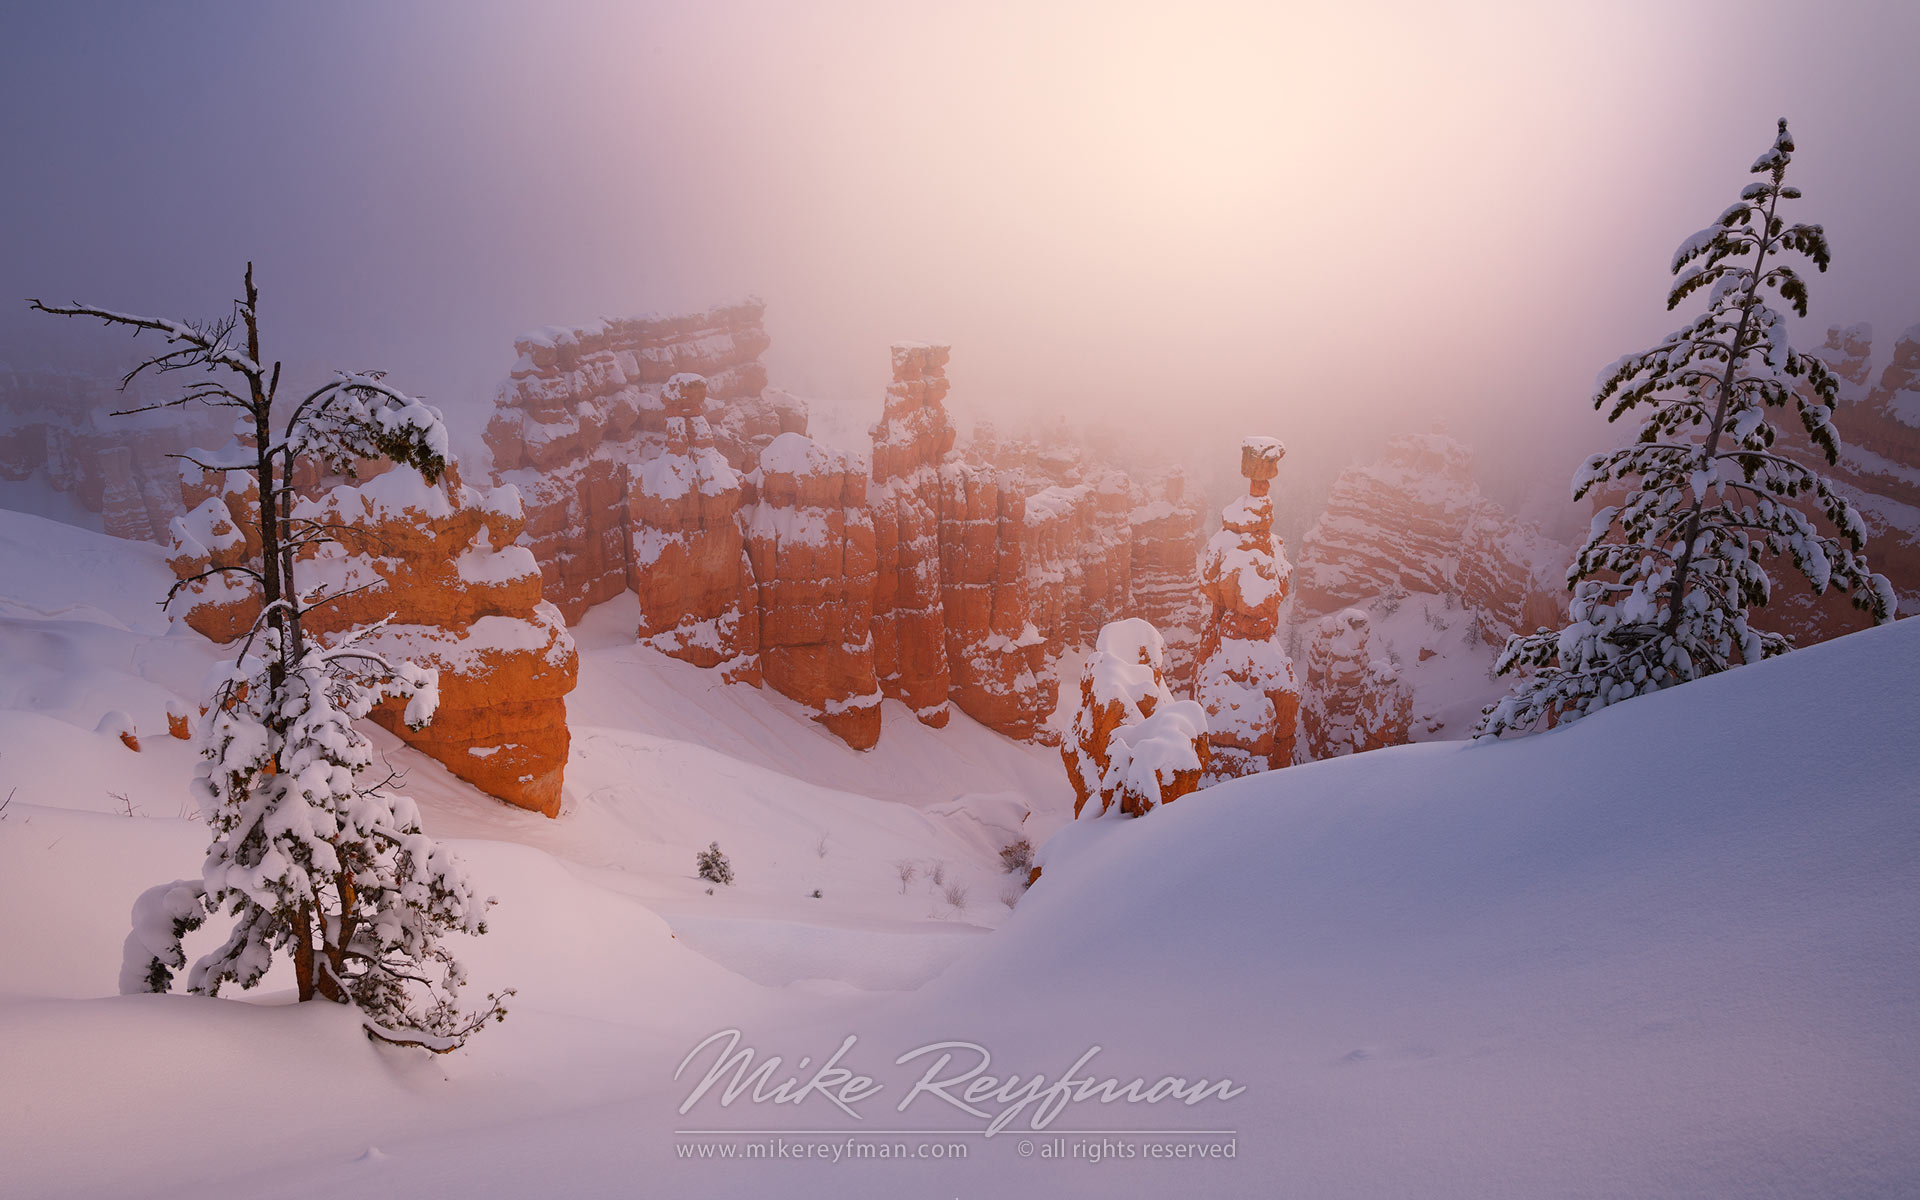 Thor's Hammer in Morning Fog. Bryce Canyon National Park, Utah, USA. - Bryce-Canyon-National-Park-Utah-USA - Mike Reyfman Photography